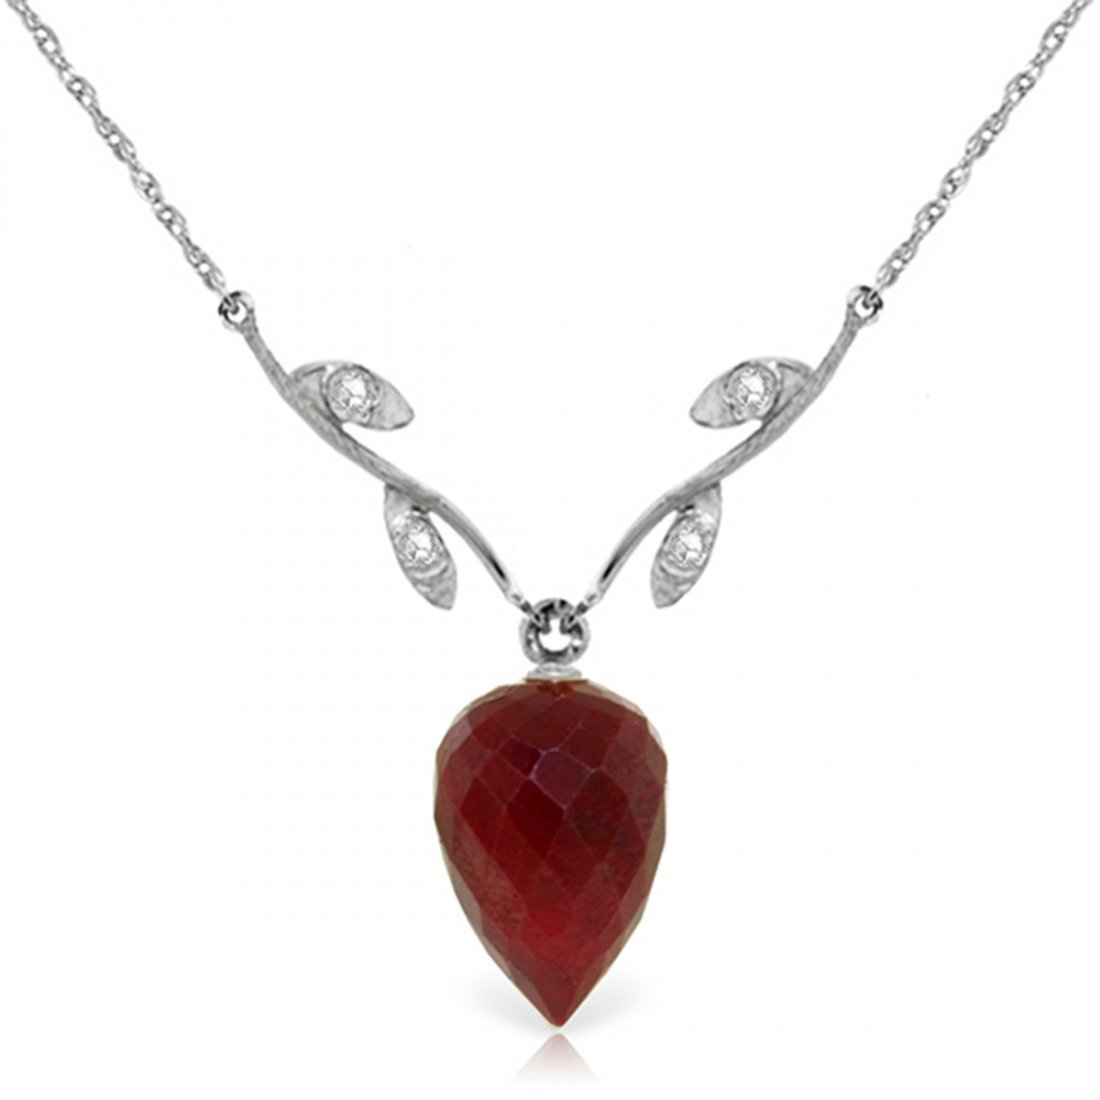 14k Gold 13.0ct Ruby with Diamond Necklace